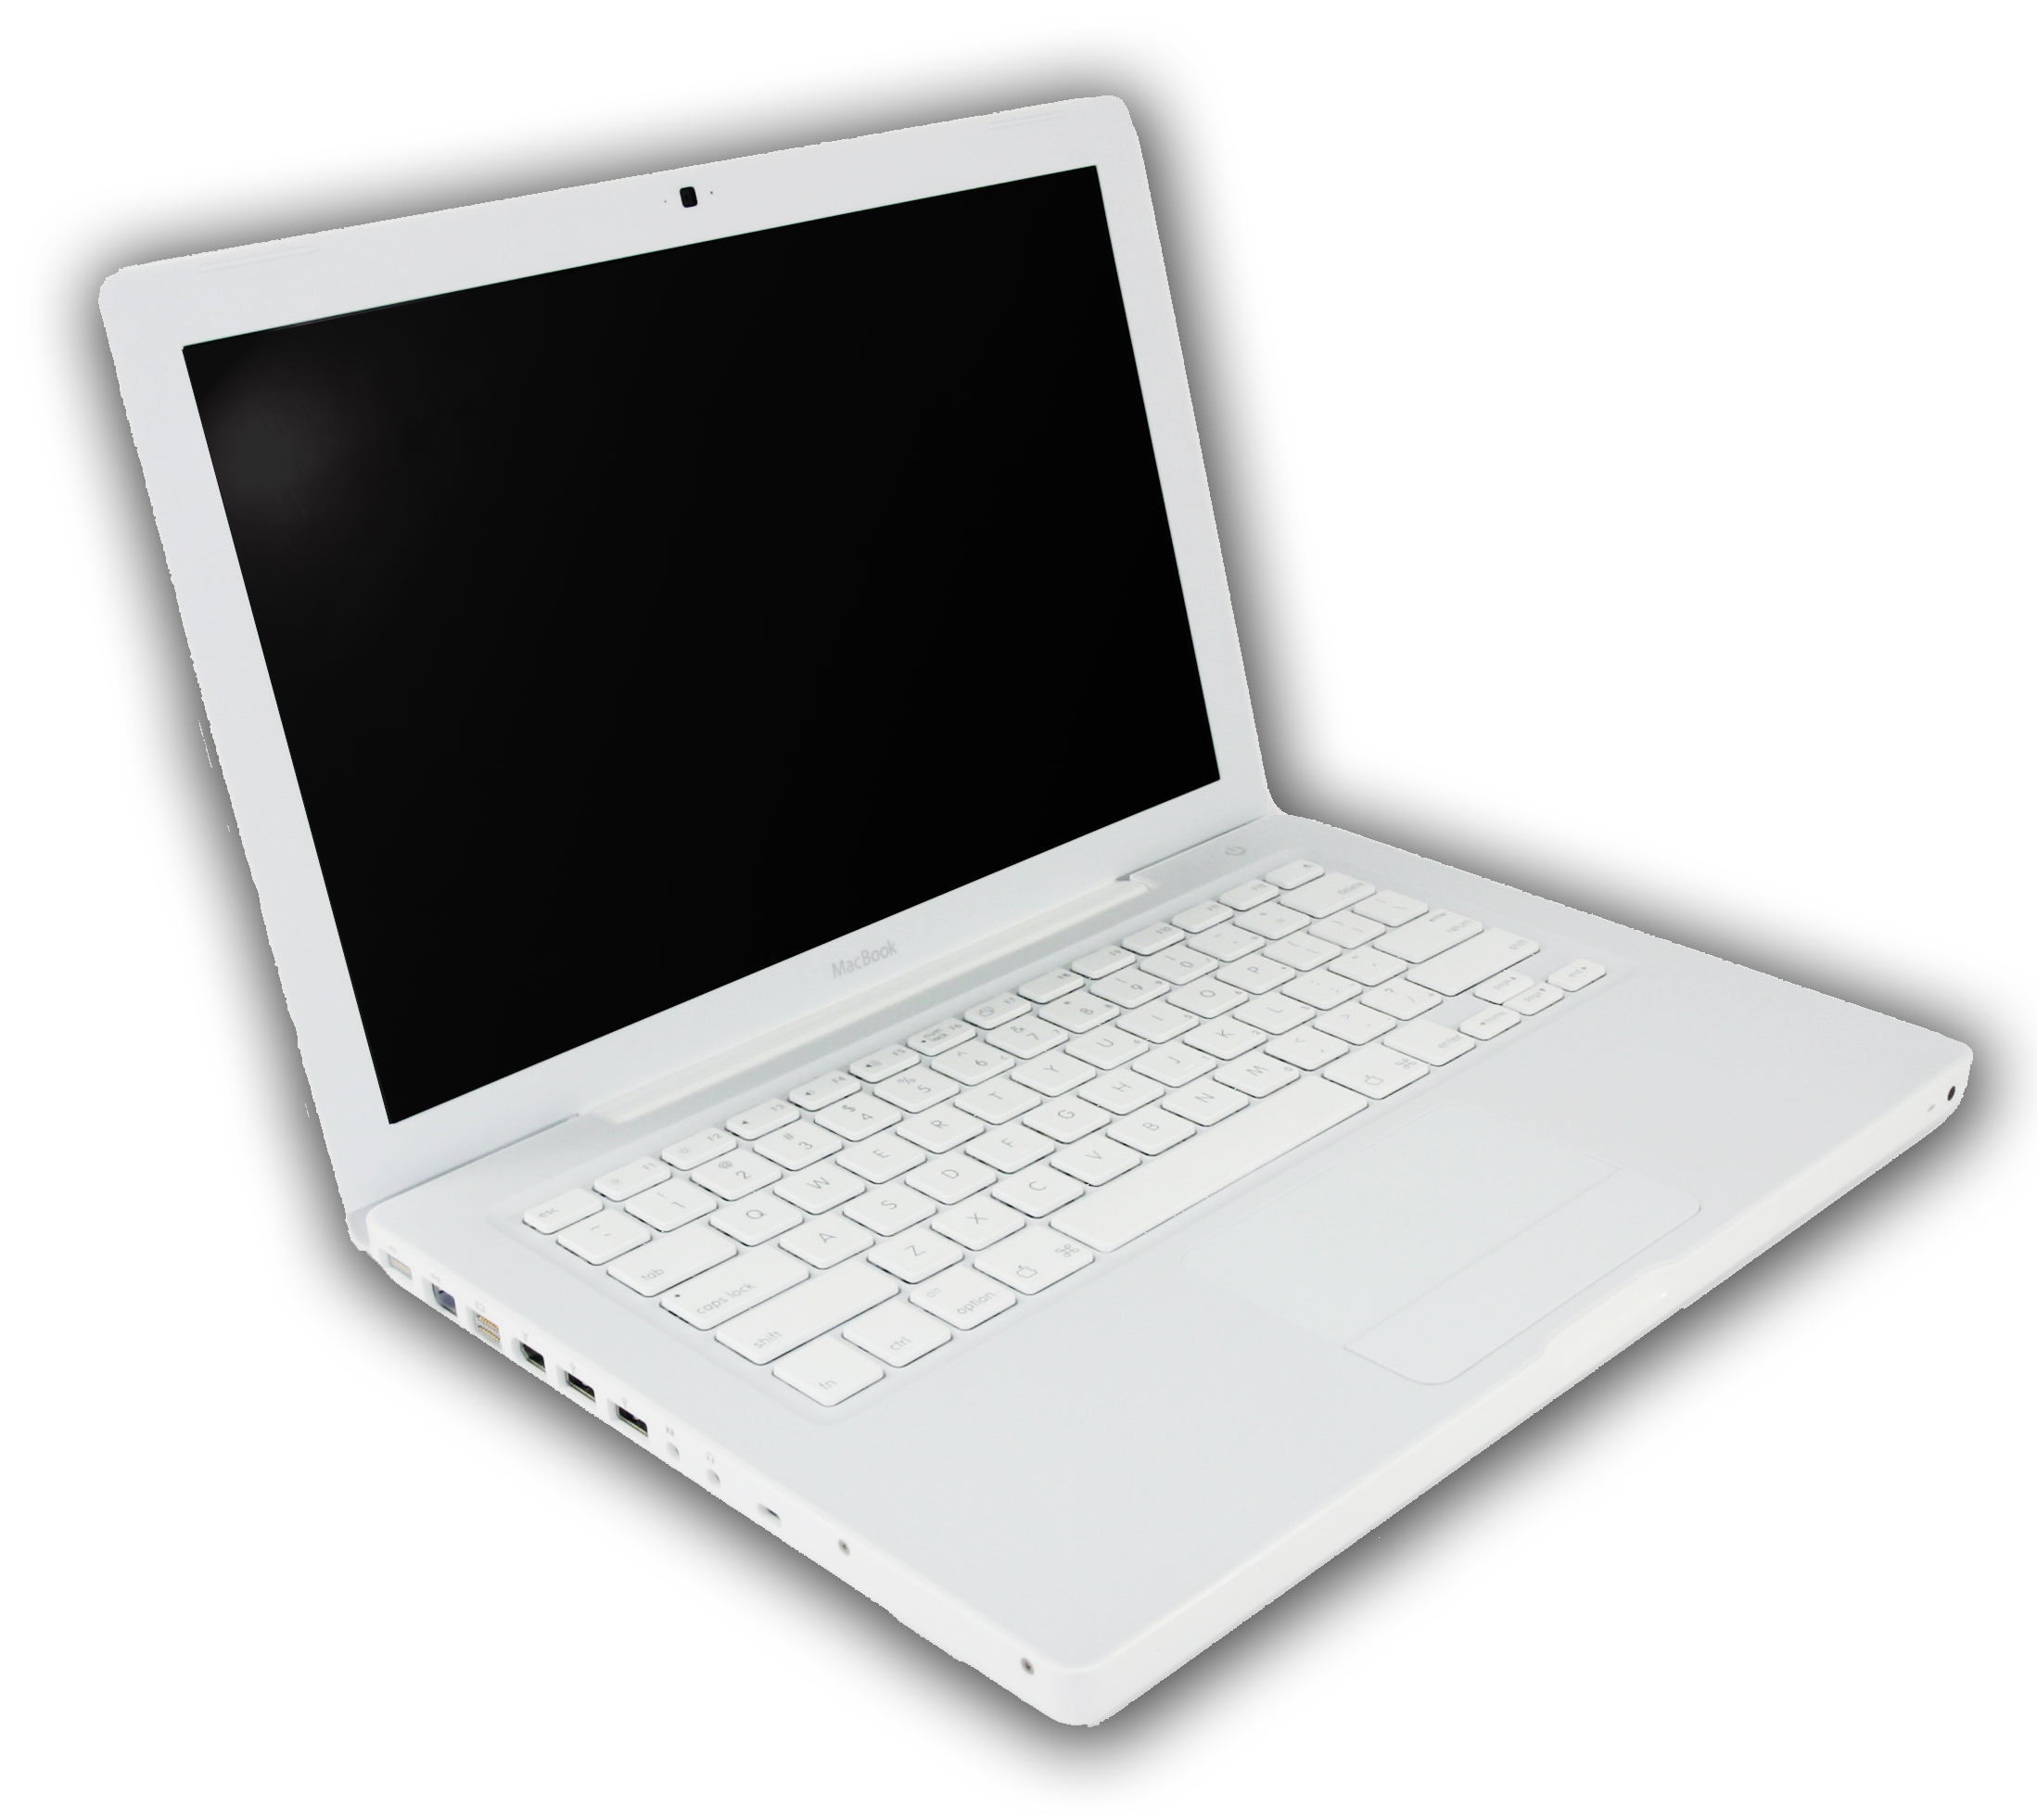 Great Price On A Macbook For Under 250 Runs The Latest Os Too Macbook White Macbook Repair Macbook